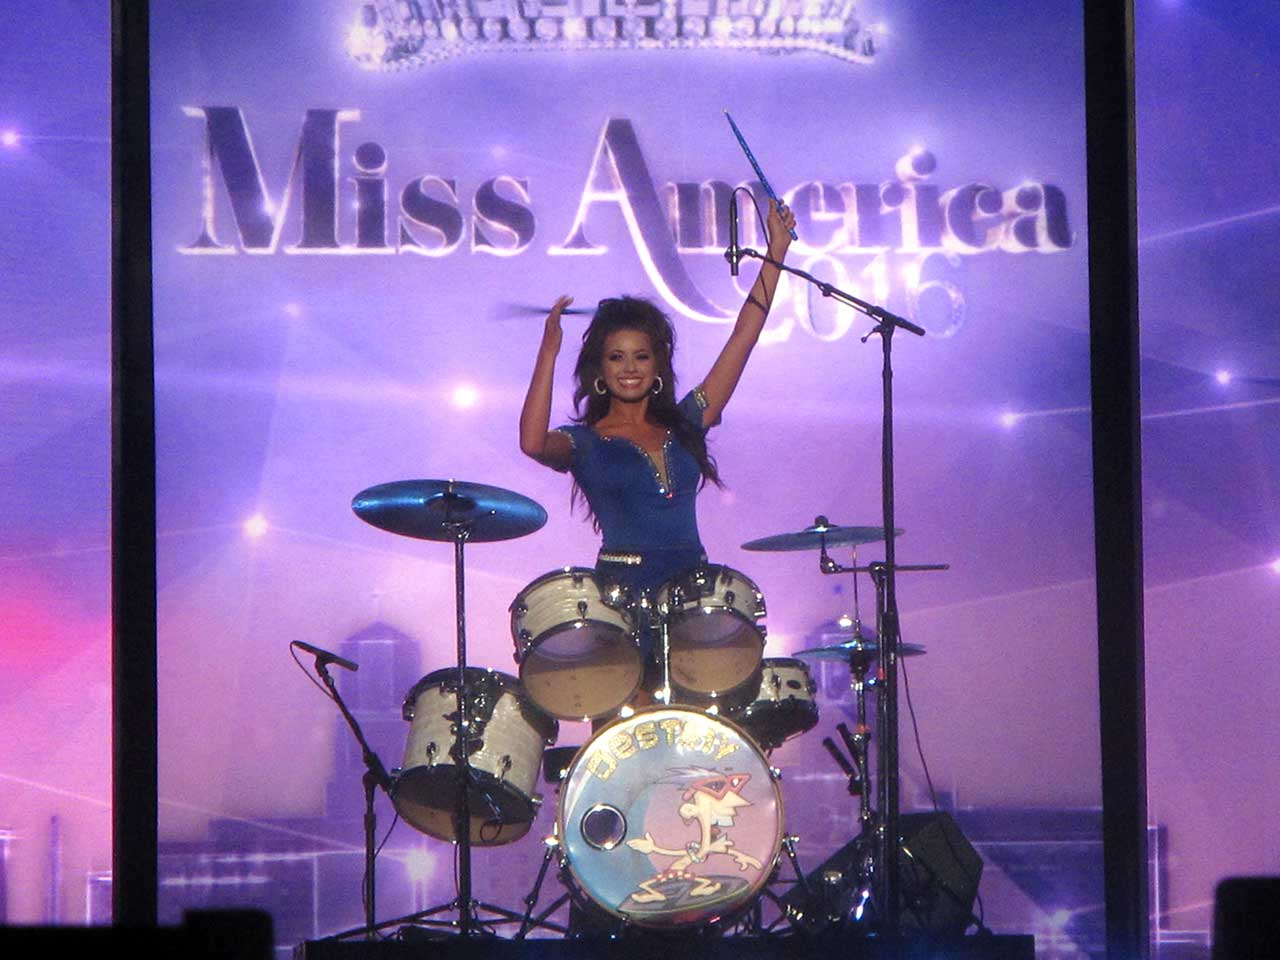 "<div class=""meta image-caption""><div class=""origin-logo origin-image ap""><span>AP</span></div><span class=""caption-text"">Miss Puerto Rico Destiny Noelle Velez plays the drums at Boardwalk Hall in Atlantic City, N.J. during preliminary competition.  (AP Photo/Wayne Parry)</span></div>"